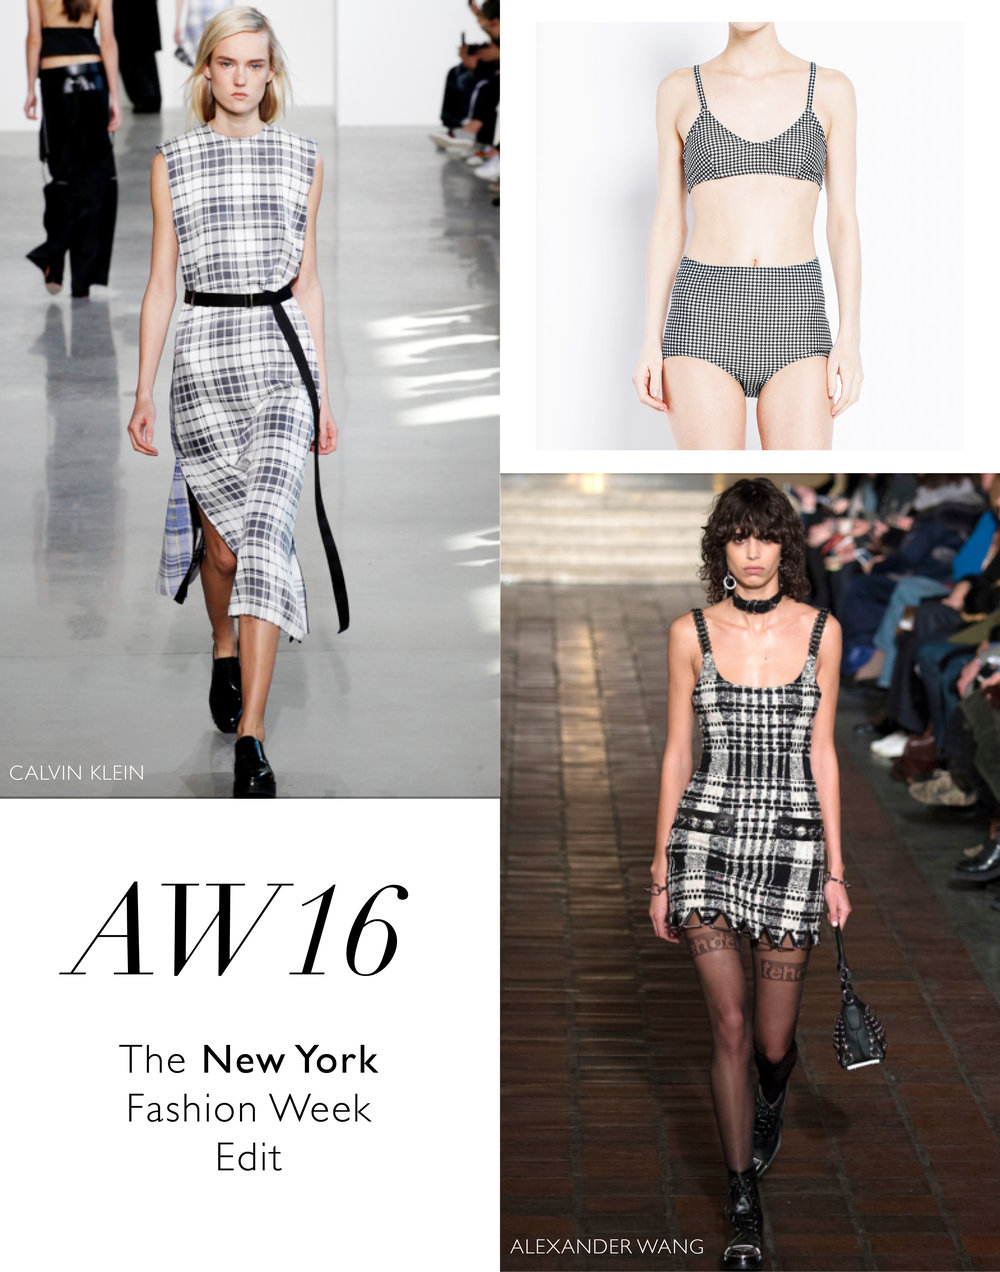 NYFW-featured-plaid-swimsuit-lingerie-la-femme-edit-013-1.jpg